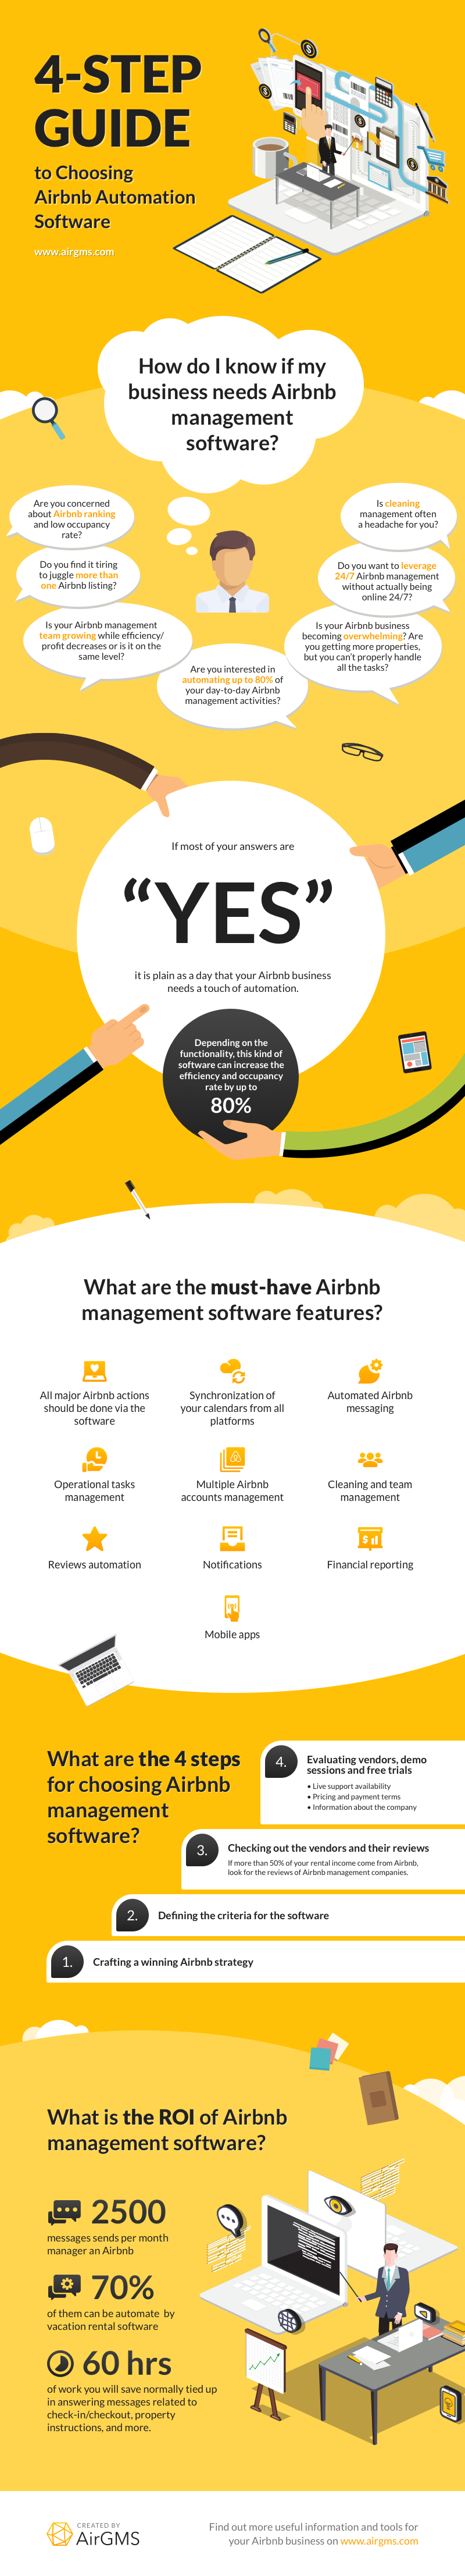 Guide to Choosing Airbnb Automation Software Infographic